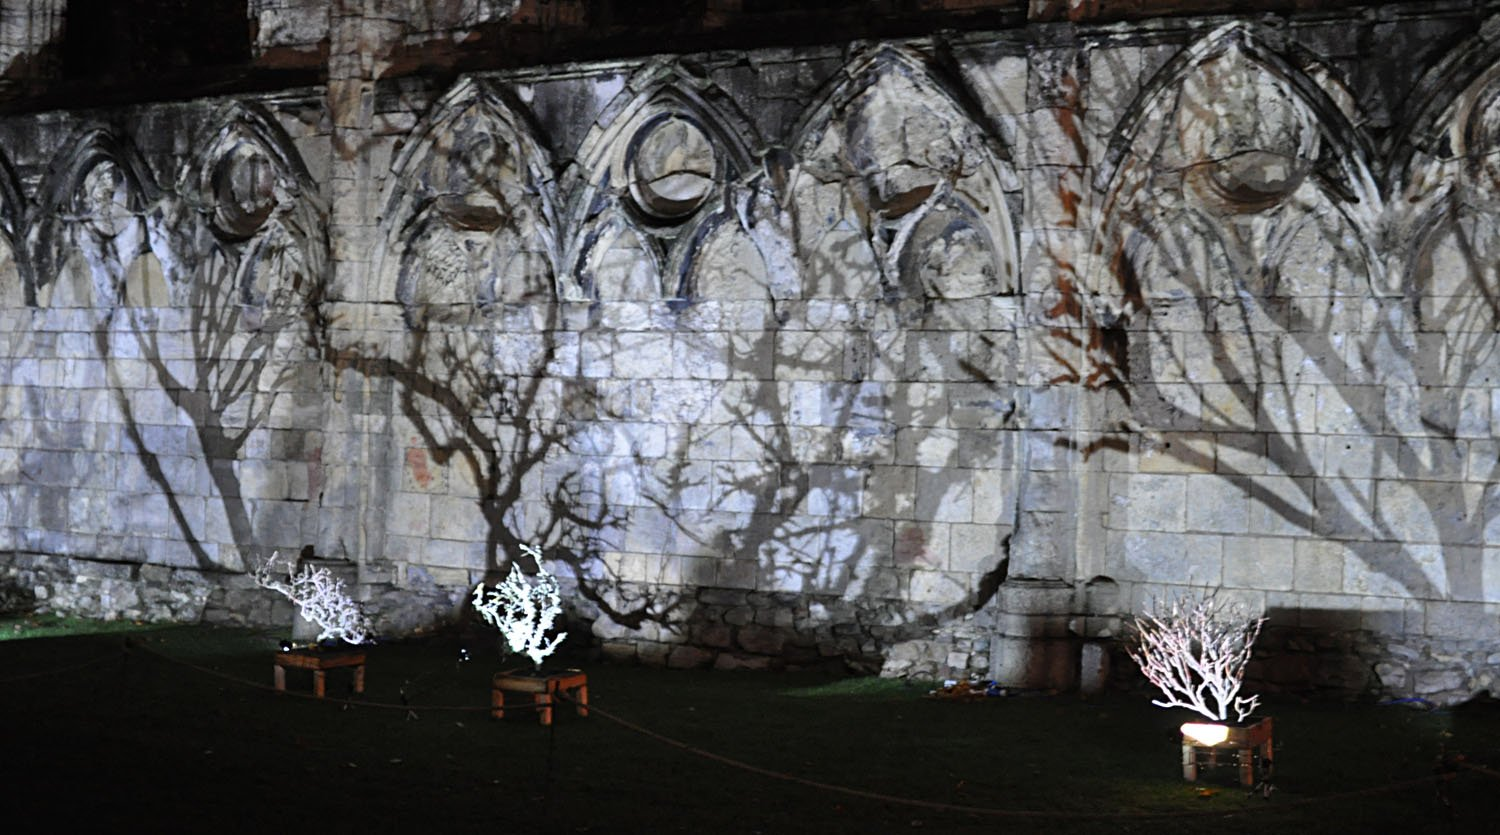 Illuminating York 2015 - The Museum Gardens